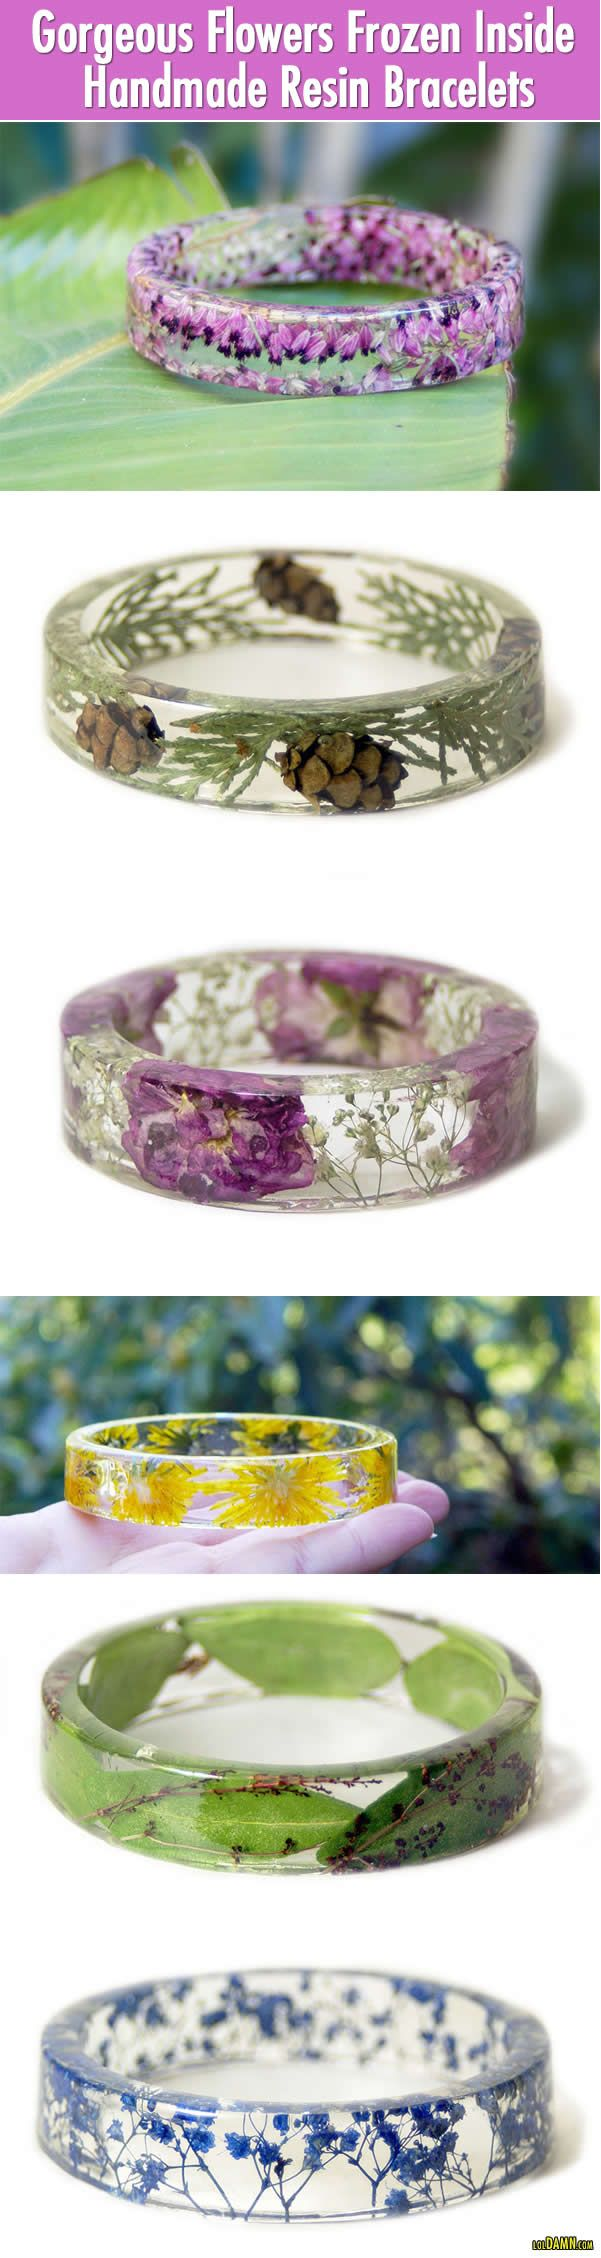 Gorgeous Flowers Frozen Inside Handmade Resin Bracelets. |LOL, Damn! Funny and Awesome pictures.